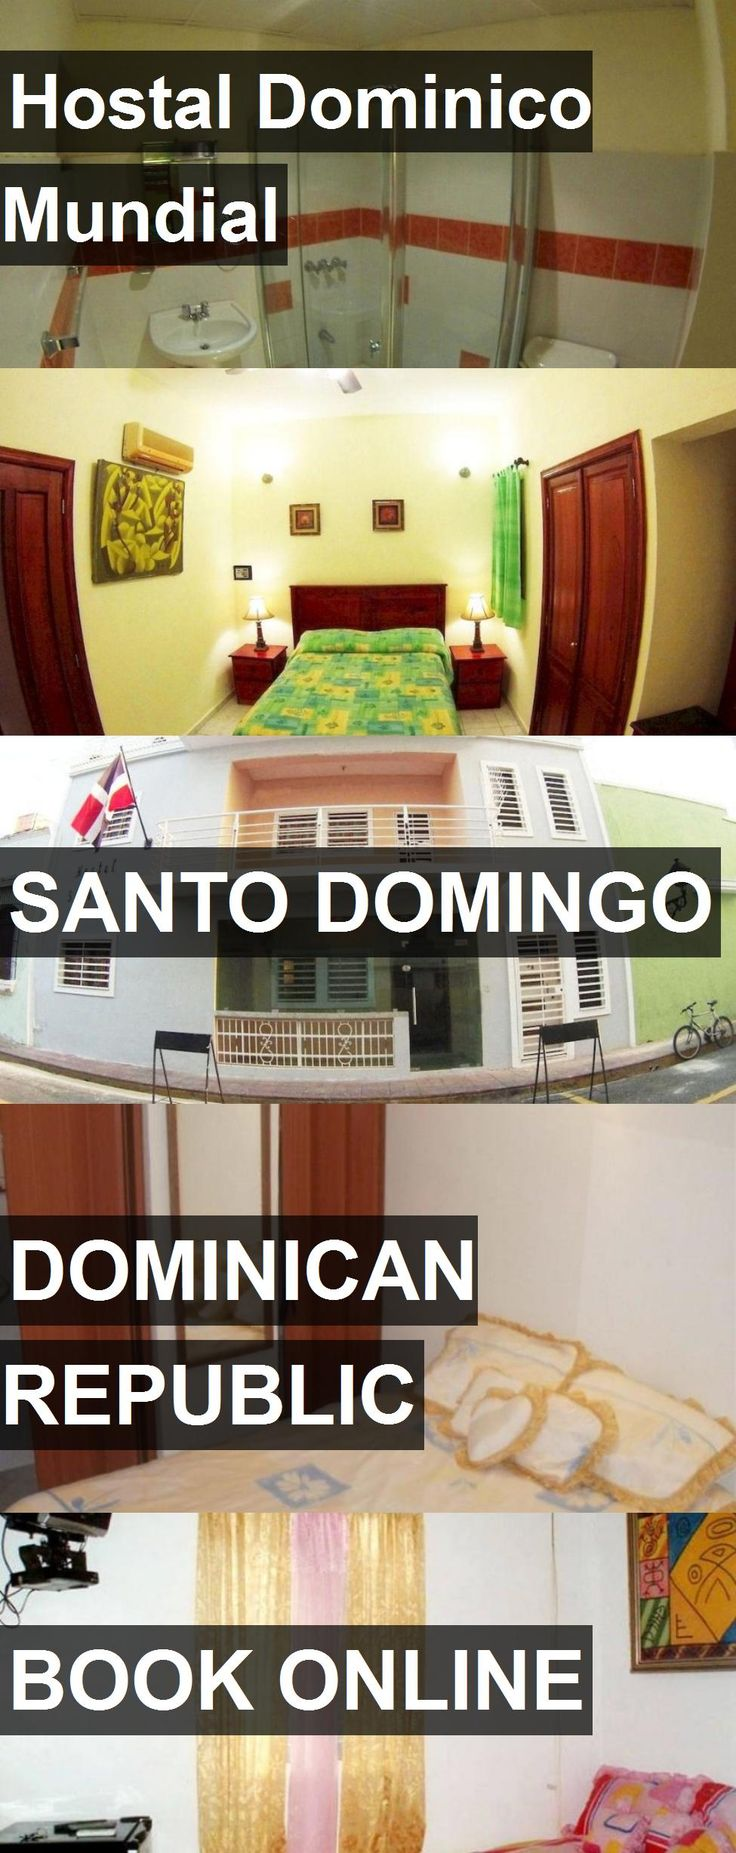 Hotel Hostal Dominico Mundial in Santo Domingo, Dominican Republic. For more information, photos, reviews and best prices please follow the link. #DominicanRepublic #SantoDomingo #hotel #travel #vacation